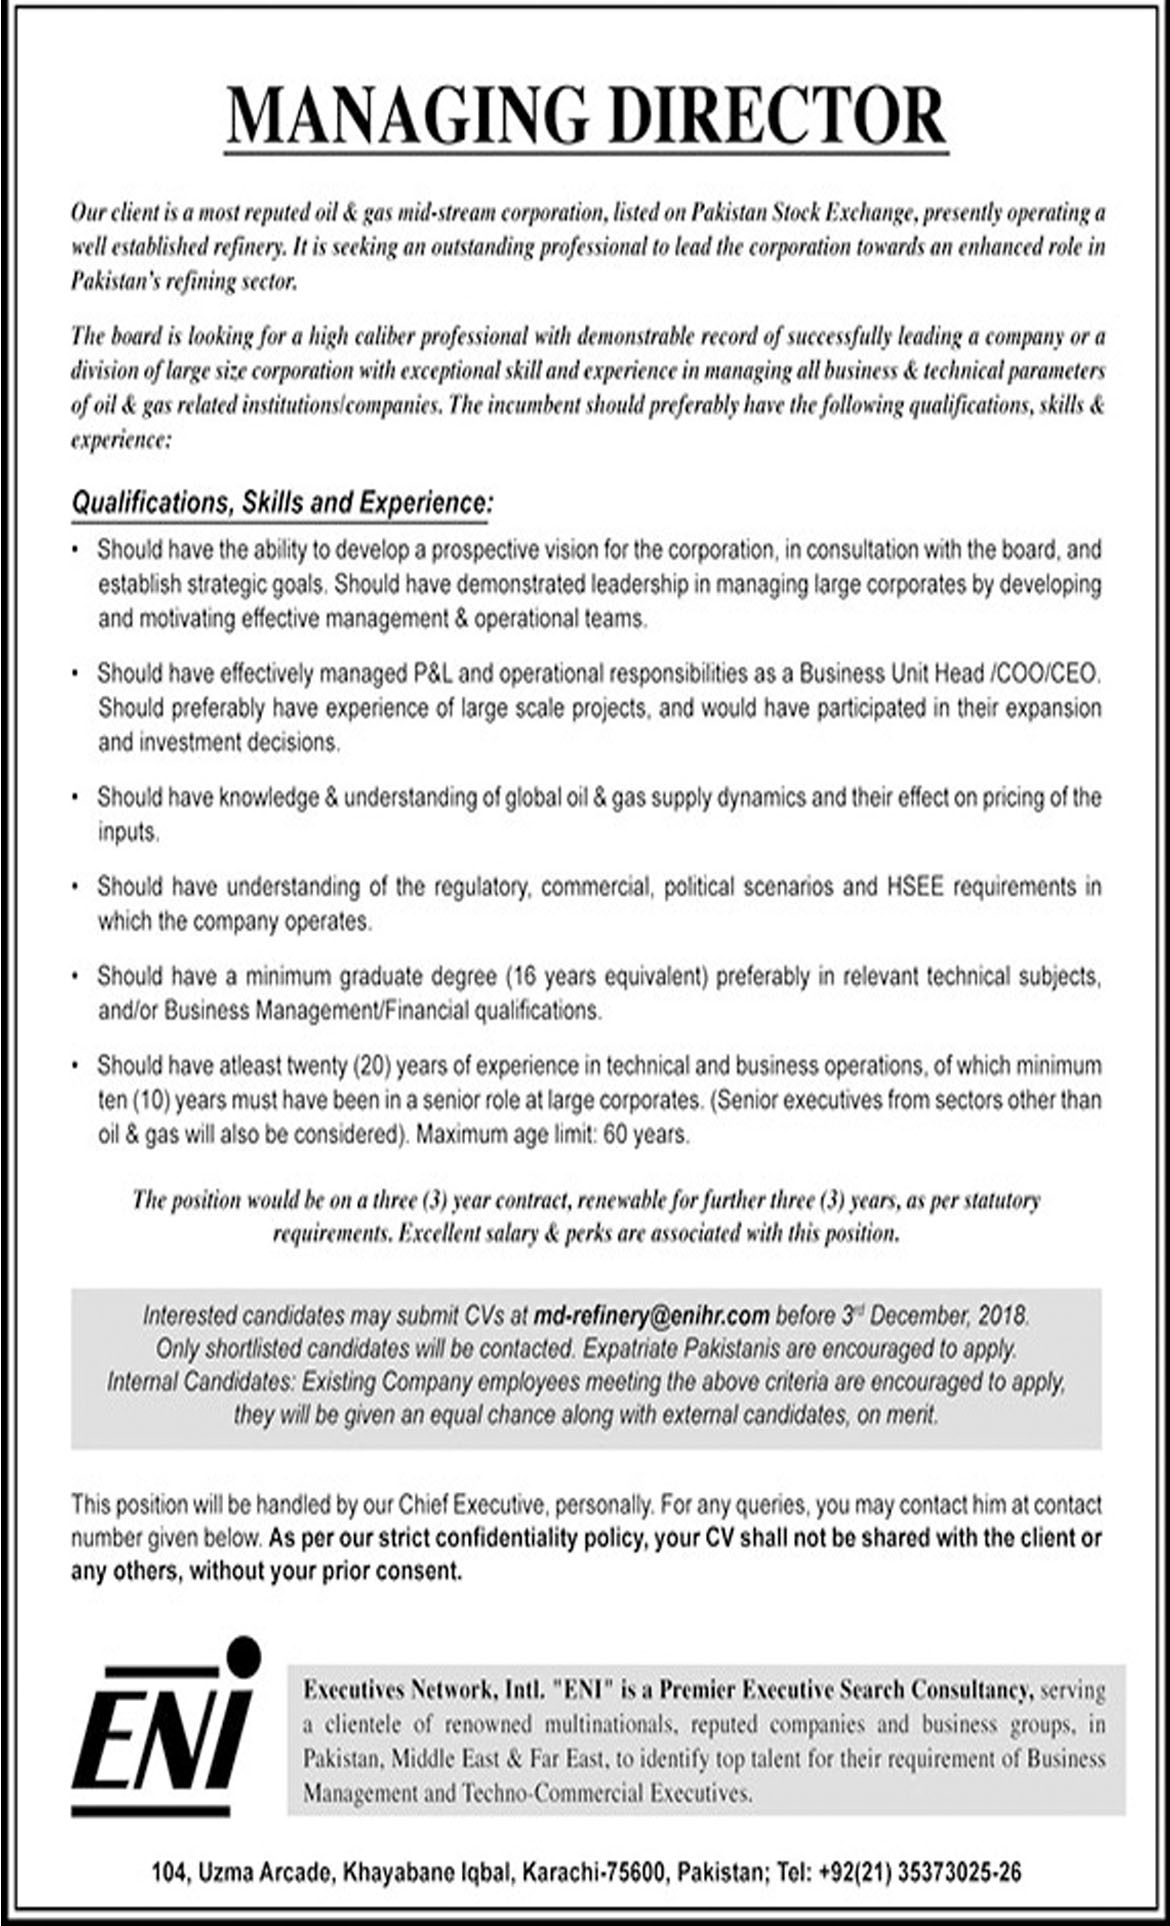 Jobs In Executive Network International 19 Nov 2018